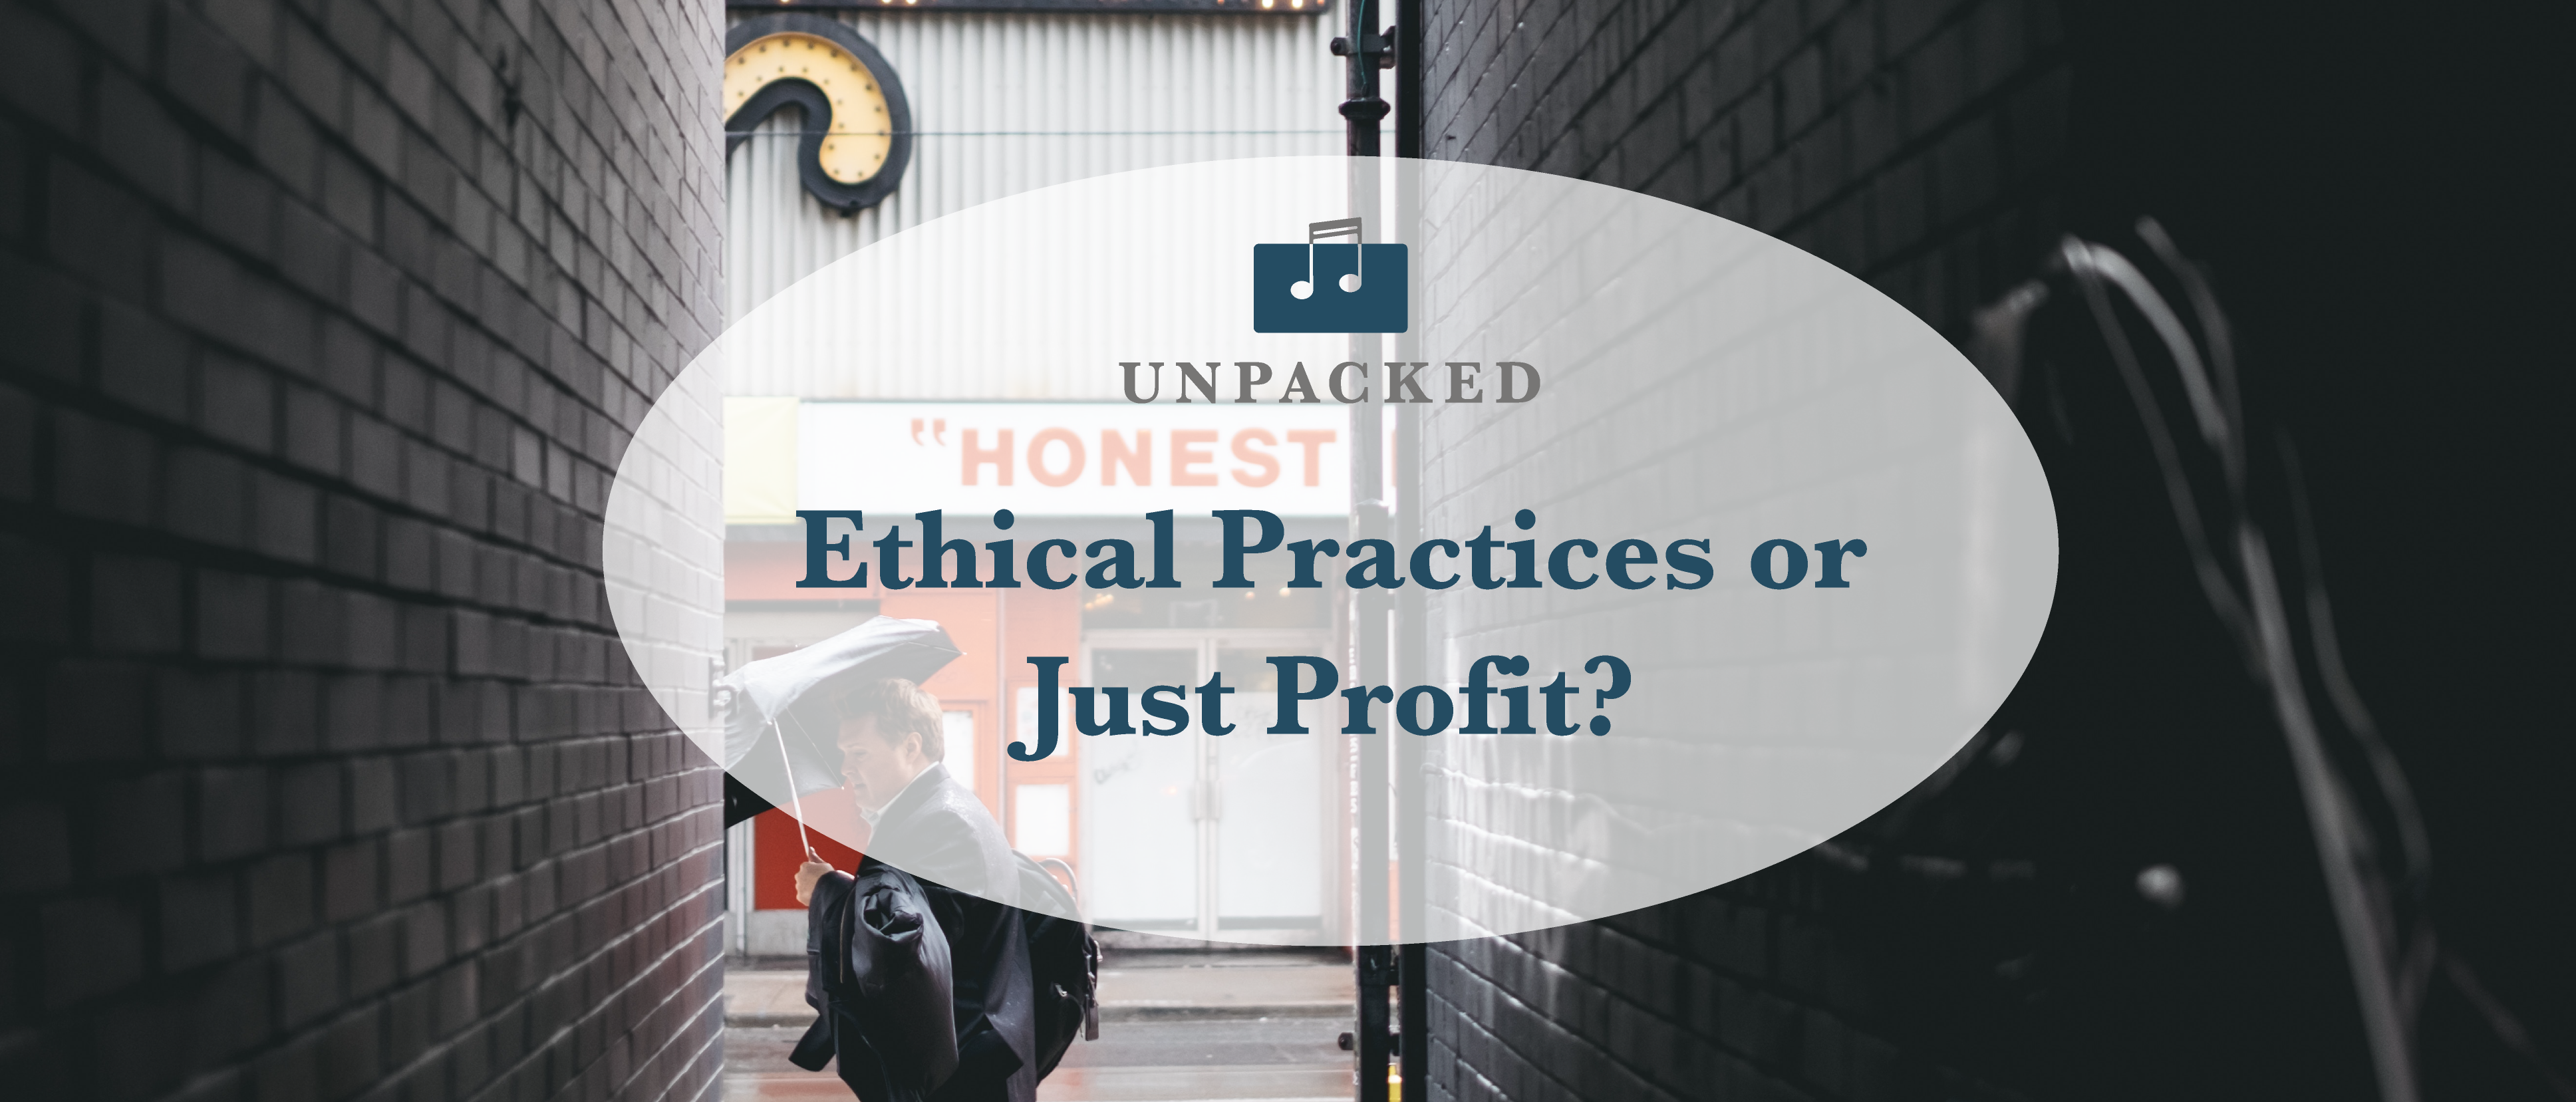 Ethical Practices or Just Profit?